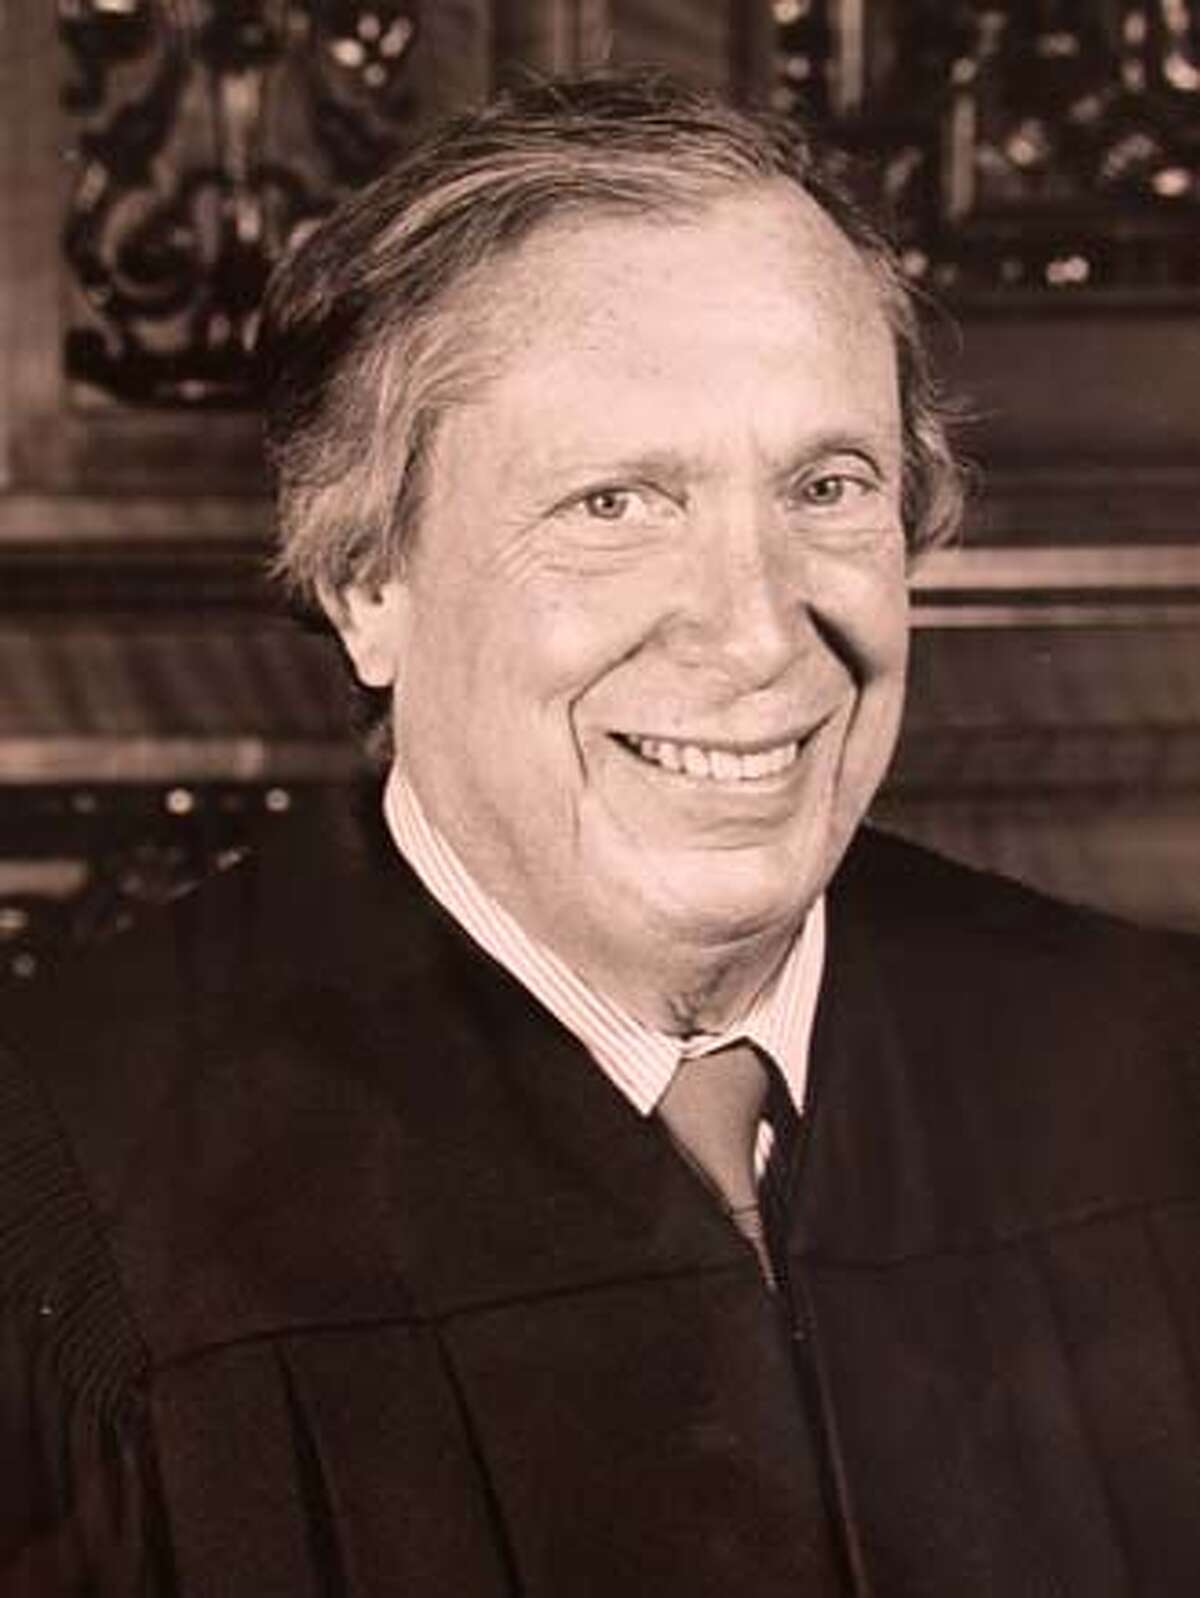 THIS IS A HANDOUT IMAGE. PLEASE VERIFY RIGHTS. REINHARDT-C-26JUN02-MN-HO Undated handout photo of Judge Stephen Reinhardt. Photo provided by the court. CAT